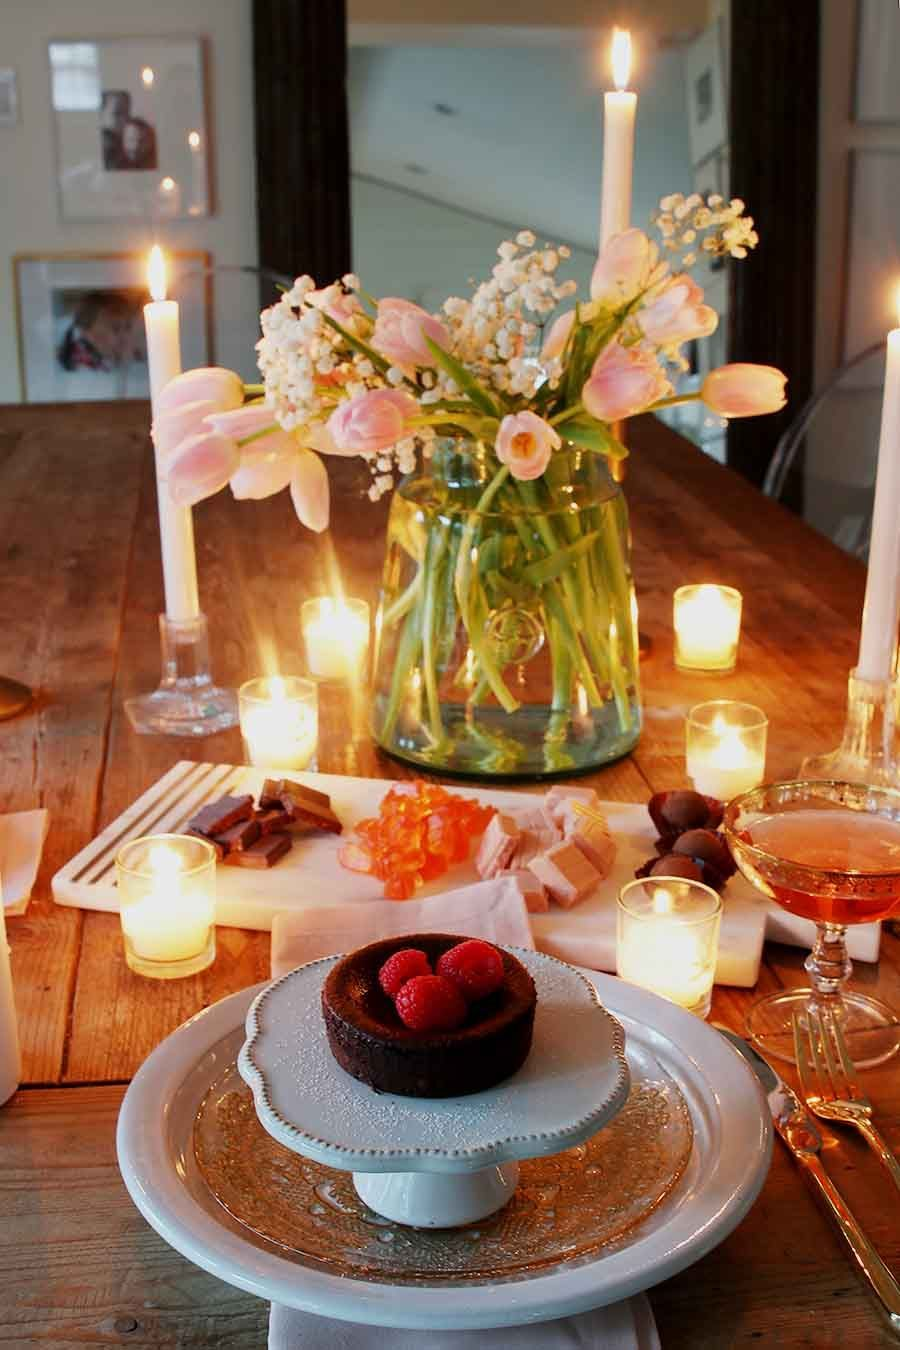 Valentines Table For Two Romantic Setting Hallstrom Home In 2020